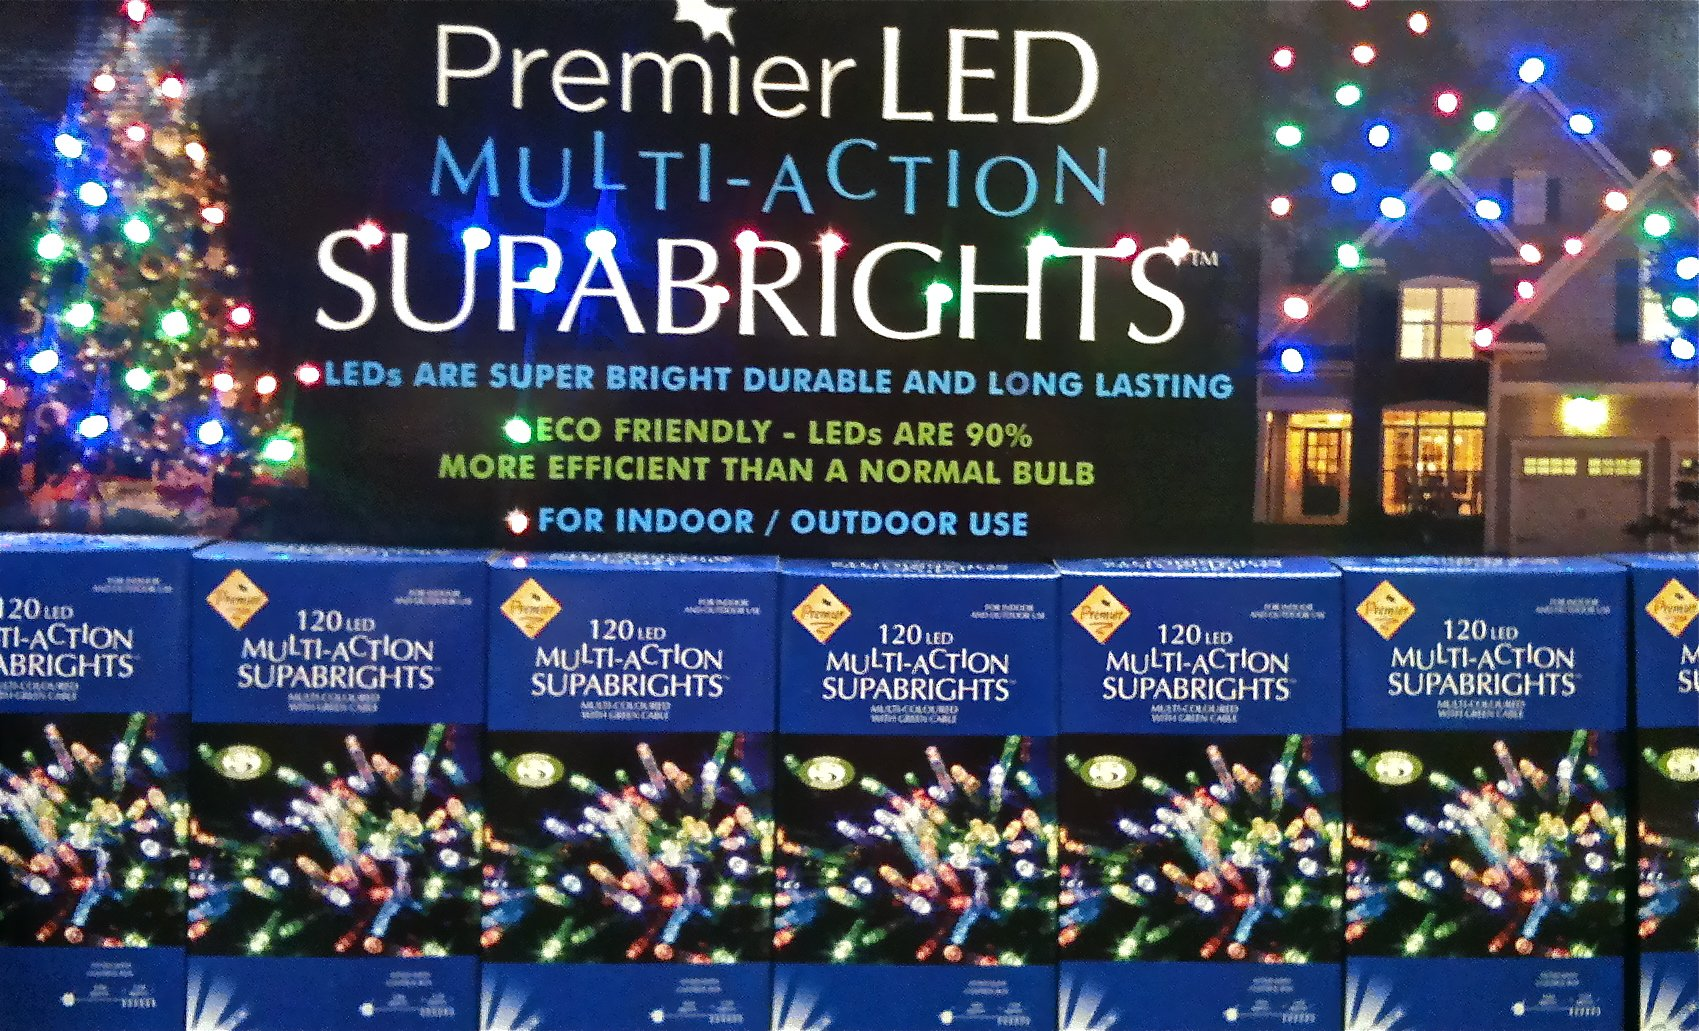 Supabrights 120 Multi Action LED Lights Multi Coloured by Premier